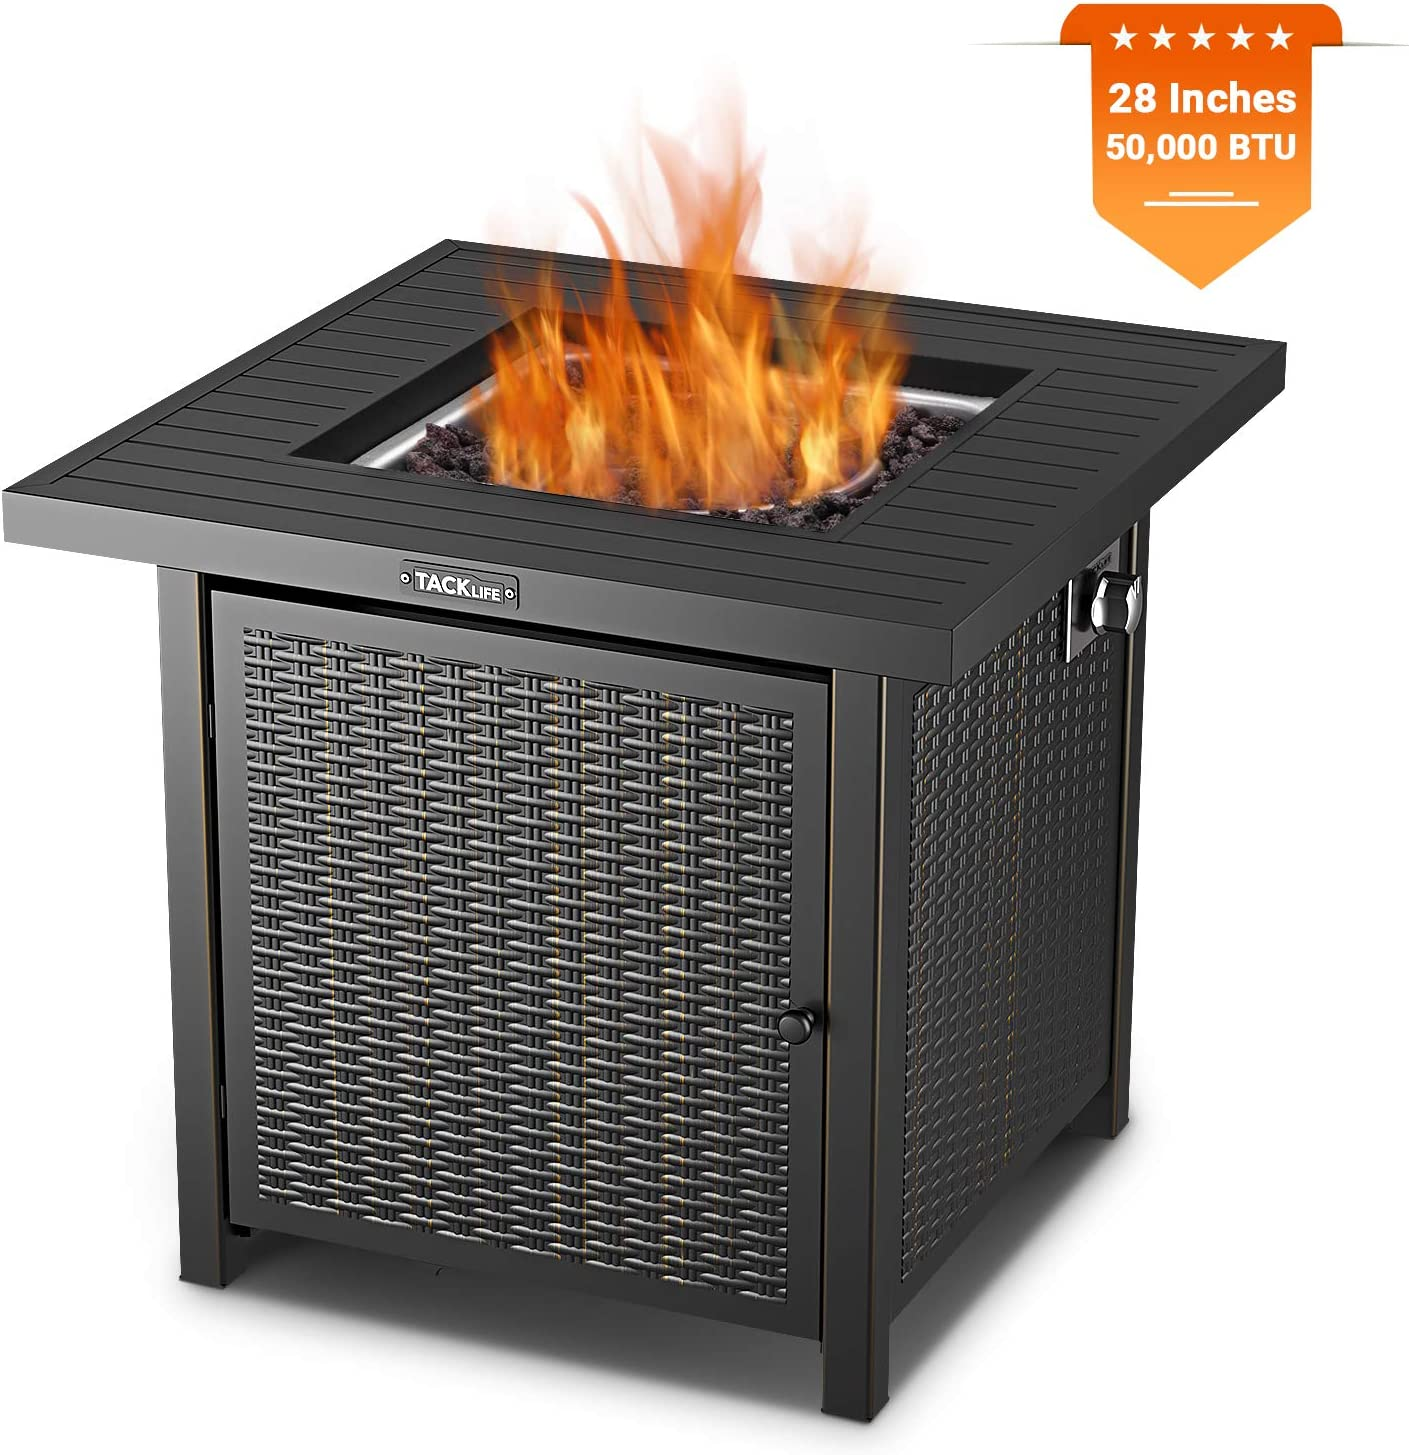 TACKLIFE Fire Pit Table, 28 Inch CSA Certified Winter Outdoor Propane Gas Fire Pit Table 50,000 BTU Auto-Lgnition Fire Table with Cover and Lava Stone for Garden, Courtyard, Terrace, Balcony, Black